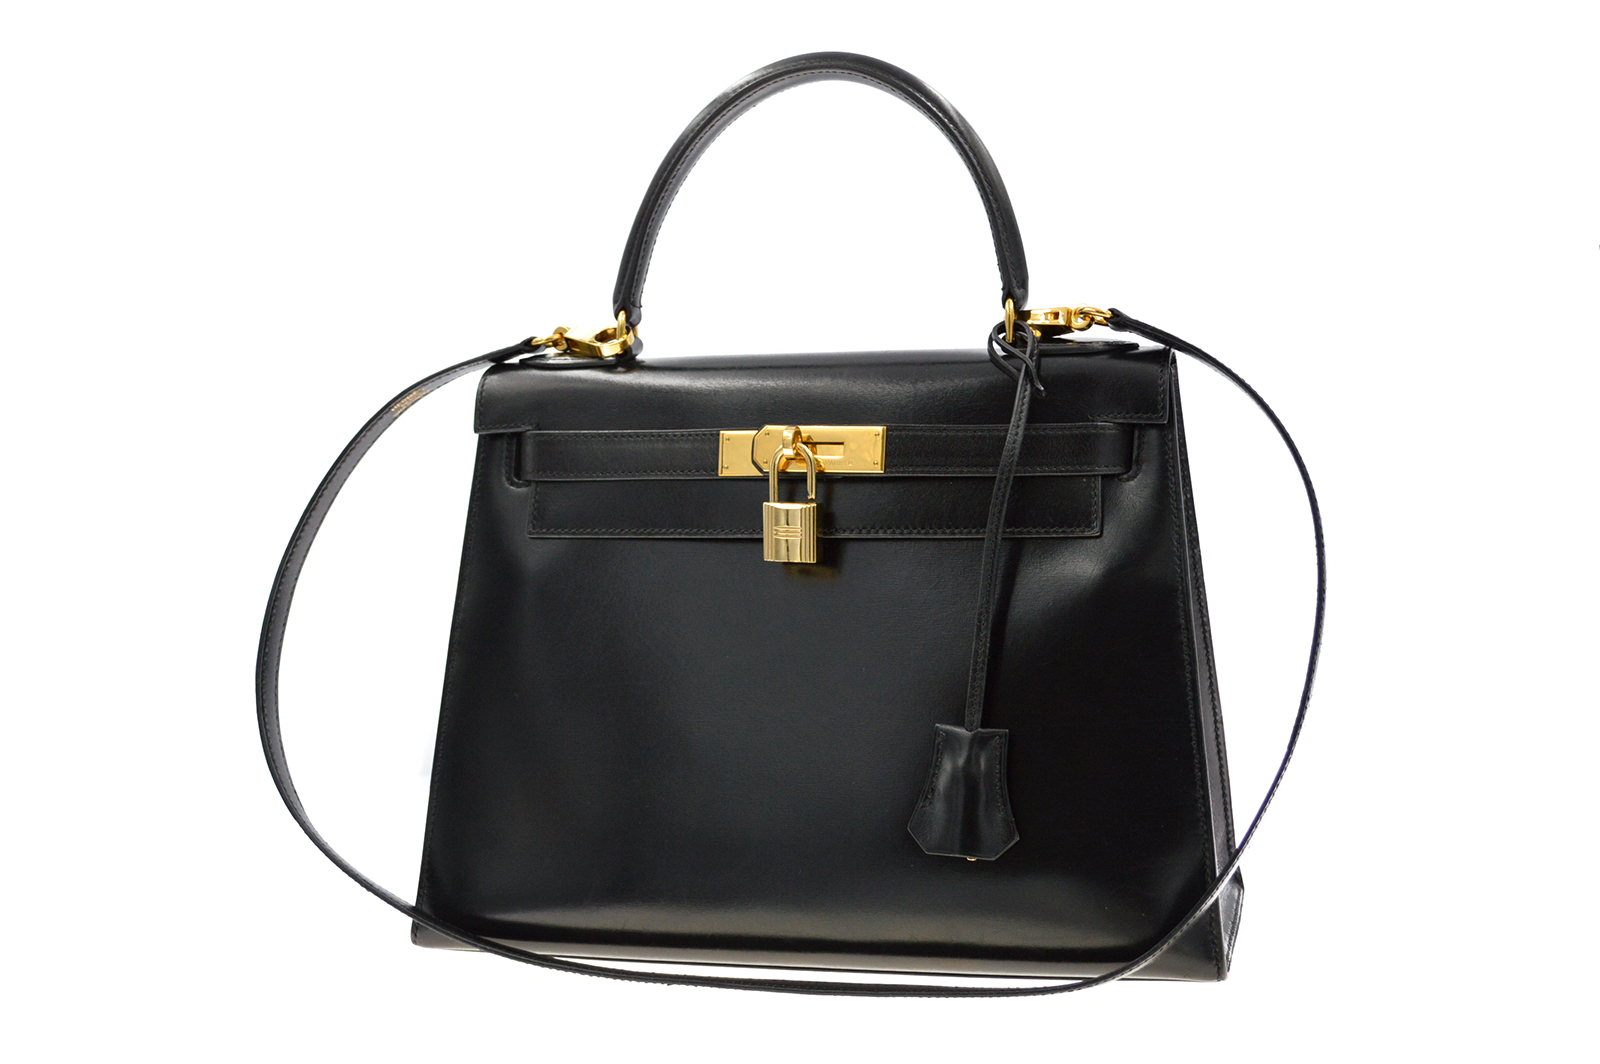 HERMES Kelly 28 Bag Black Box Sellier HM190145a